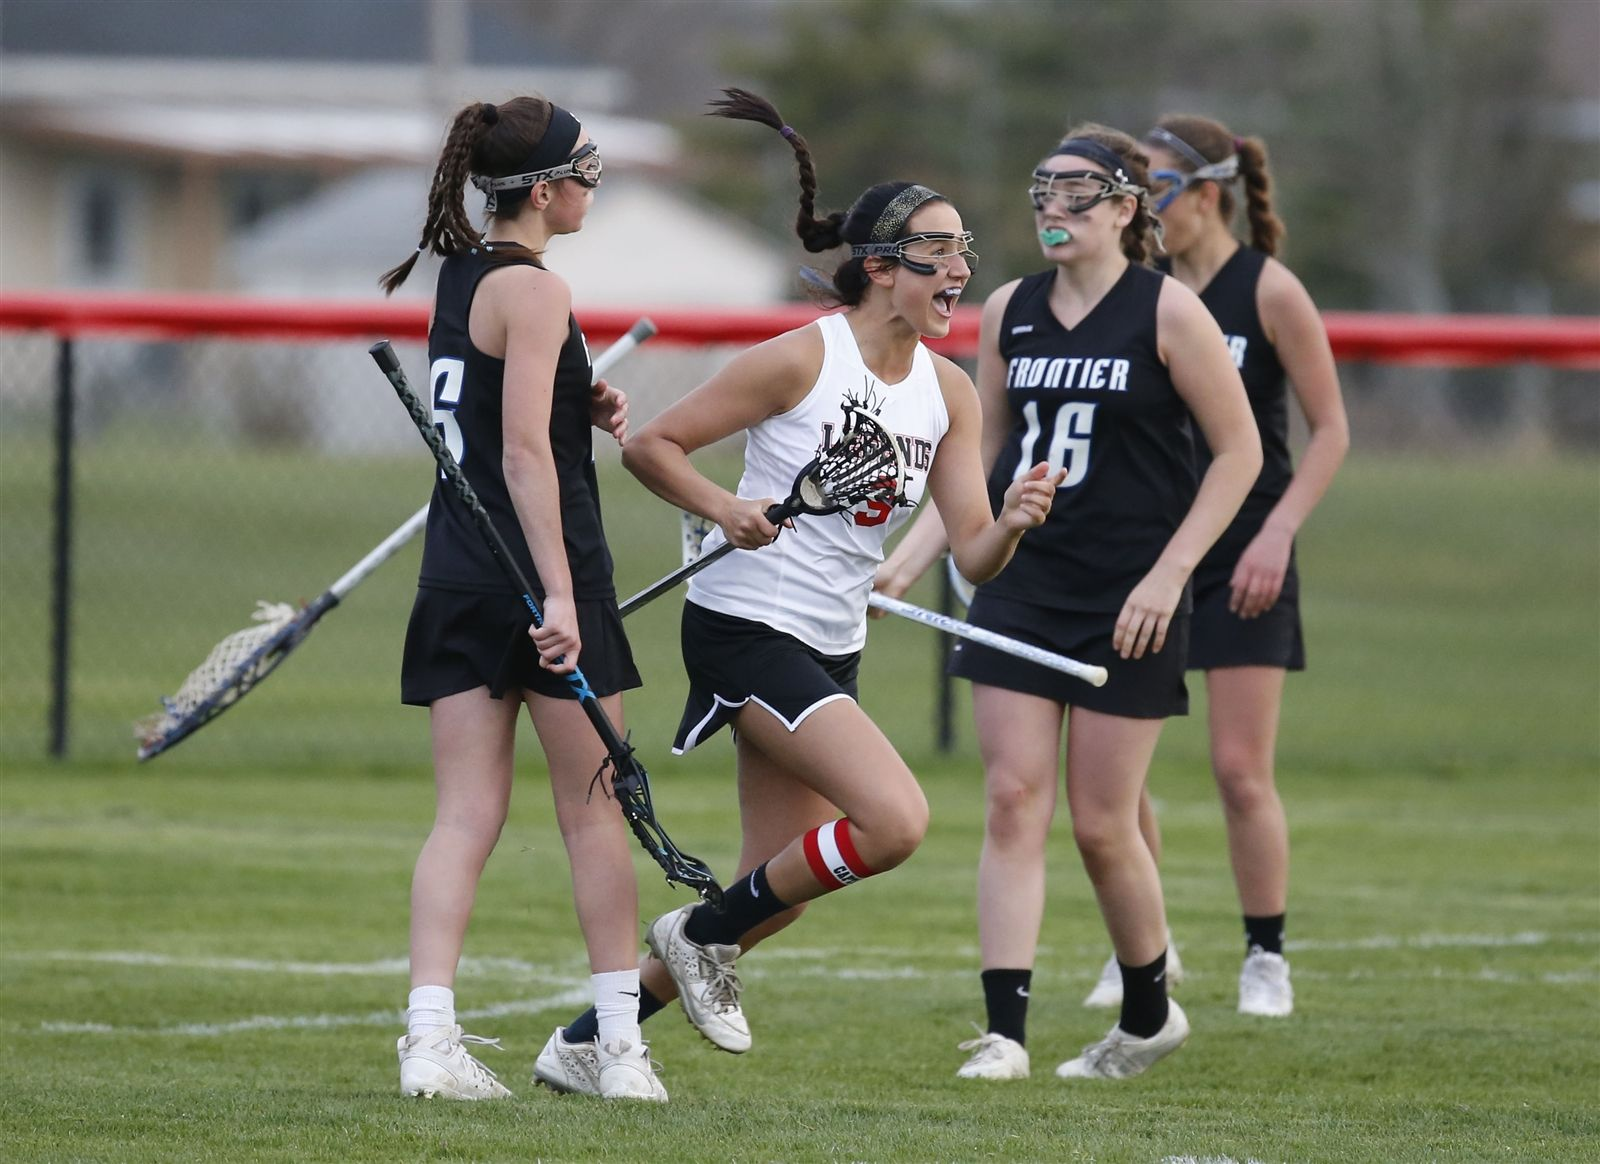 Lancaster's Jenna Hagen celebrates after scoring in overtime to defeat Frontier 11-10 at Lancaster high school on Friday, April 22, 2016.